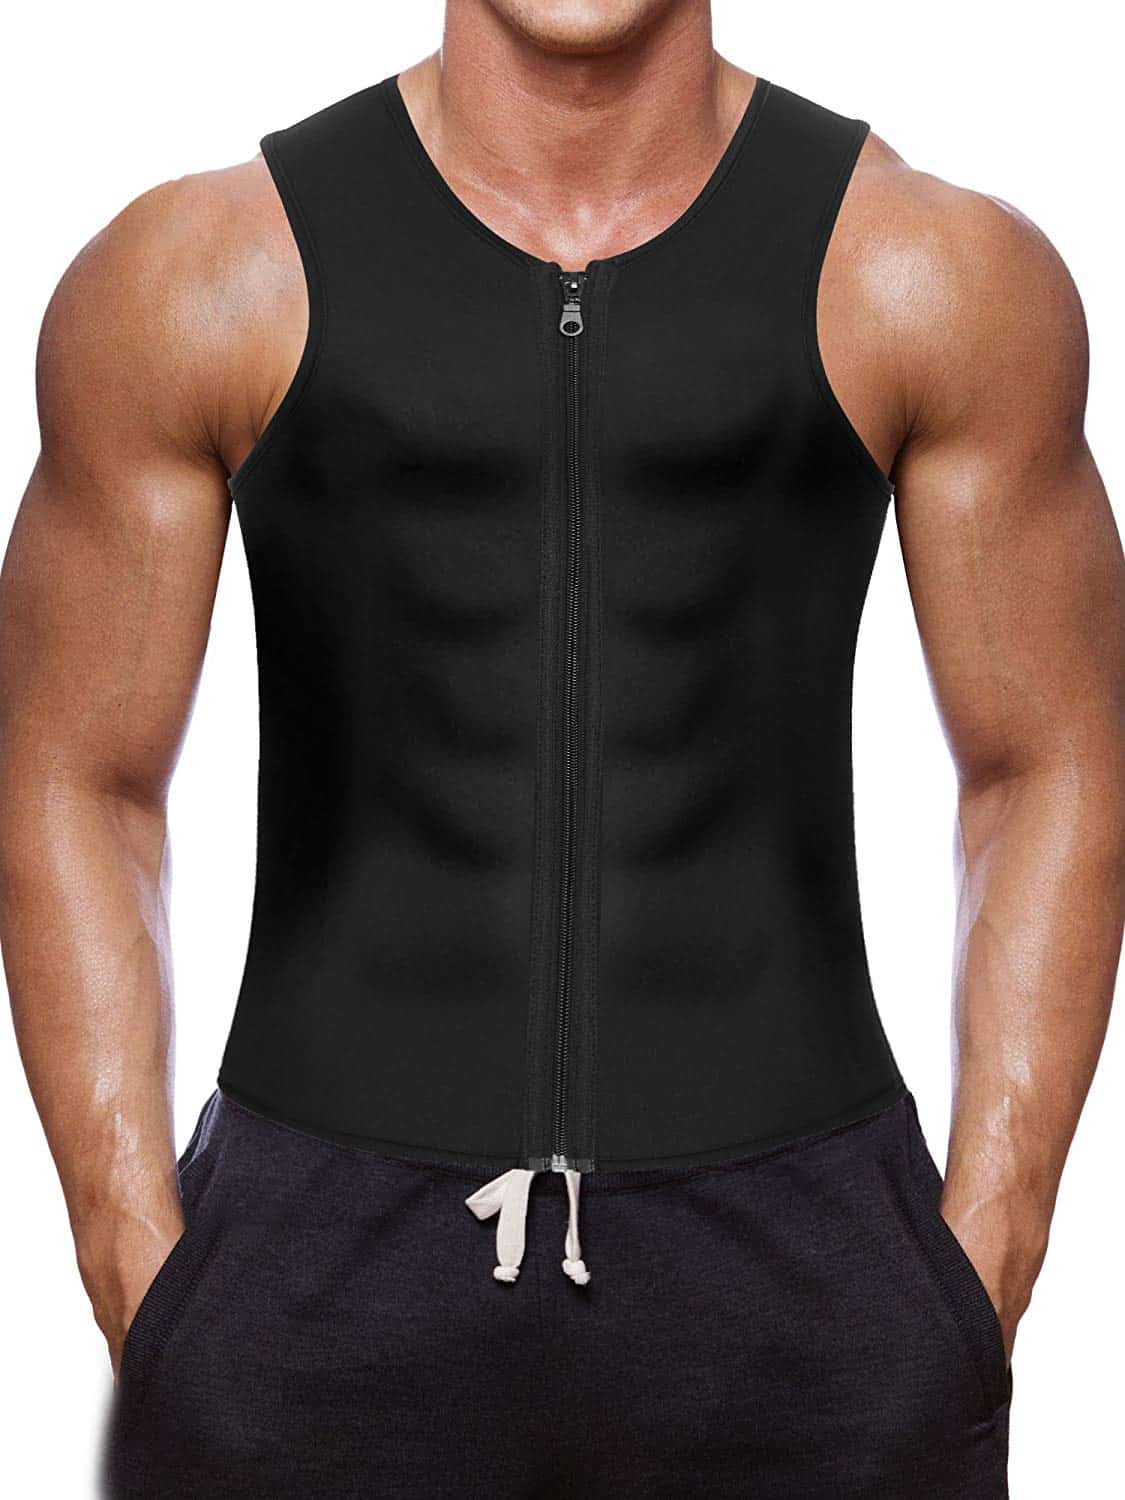 Fitness Gears For A Great Workout